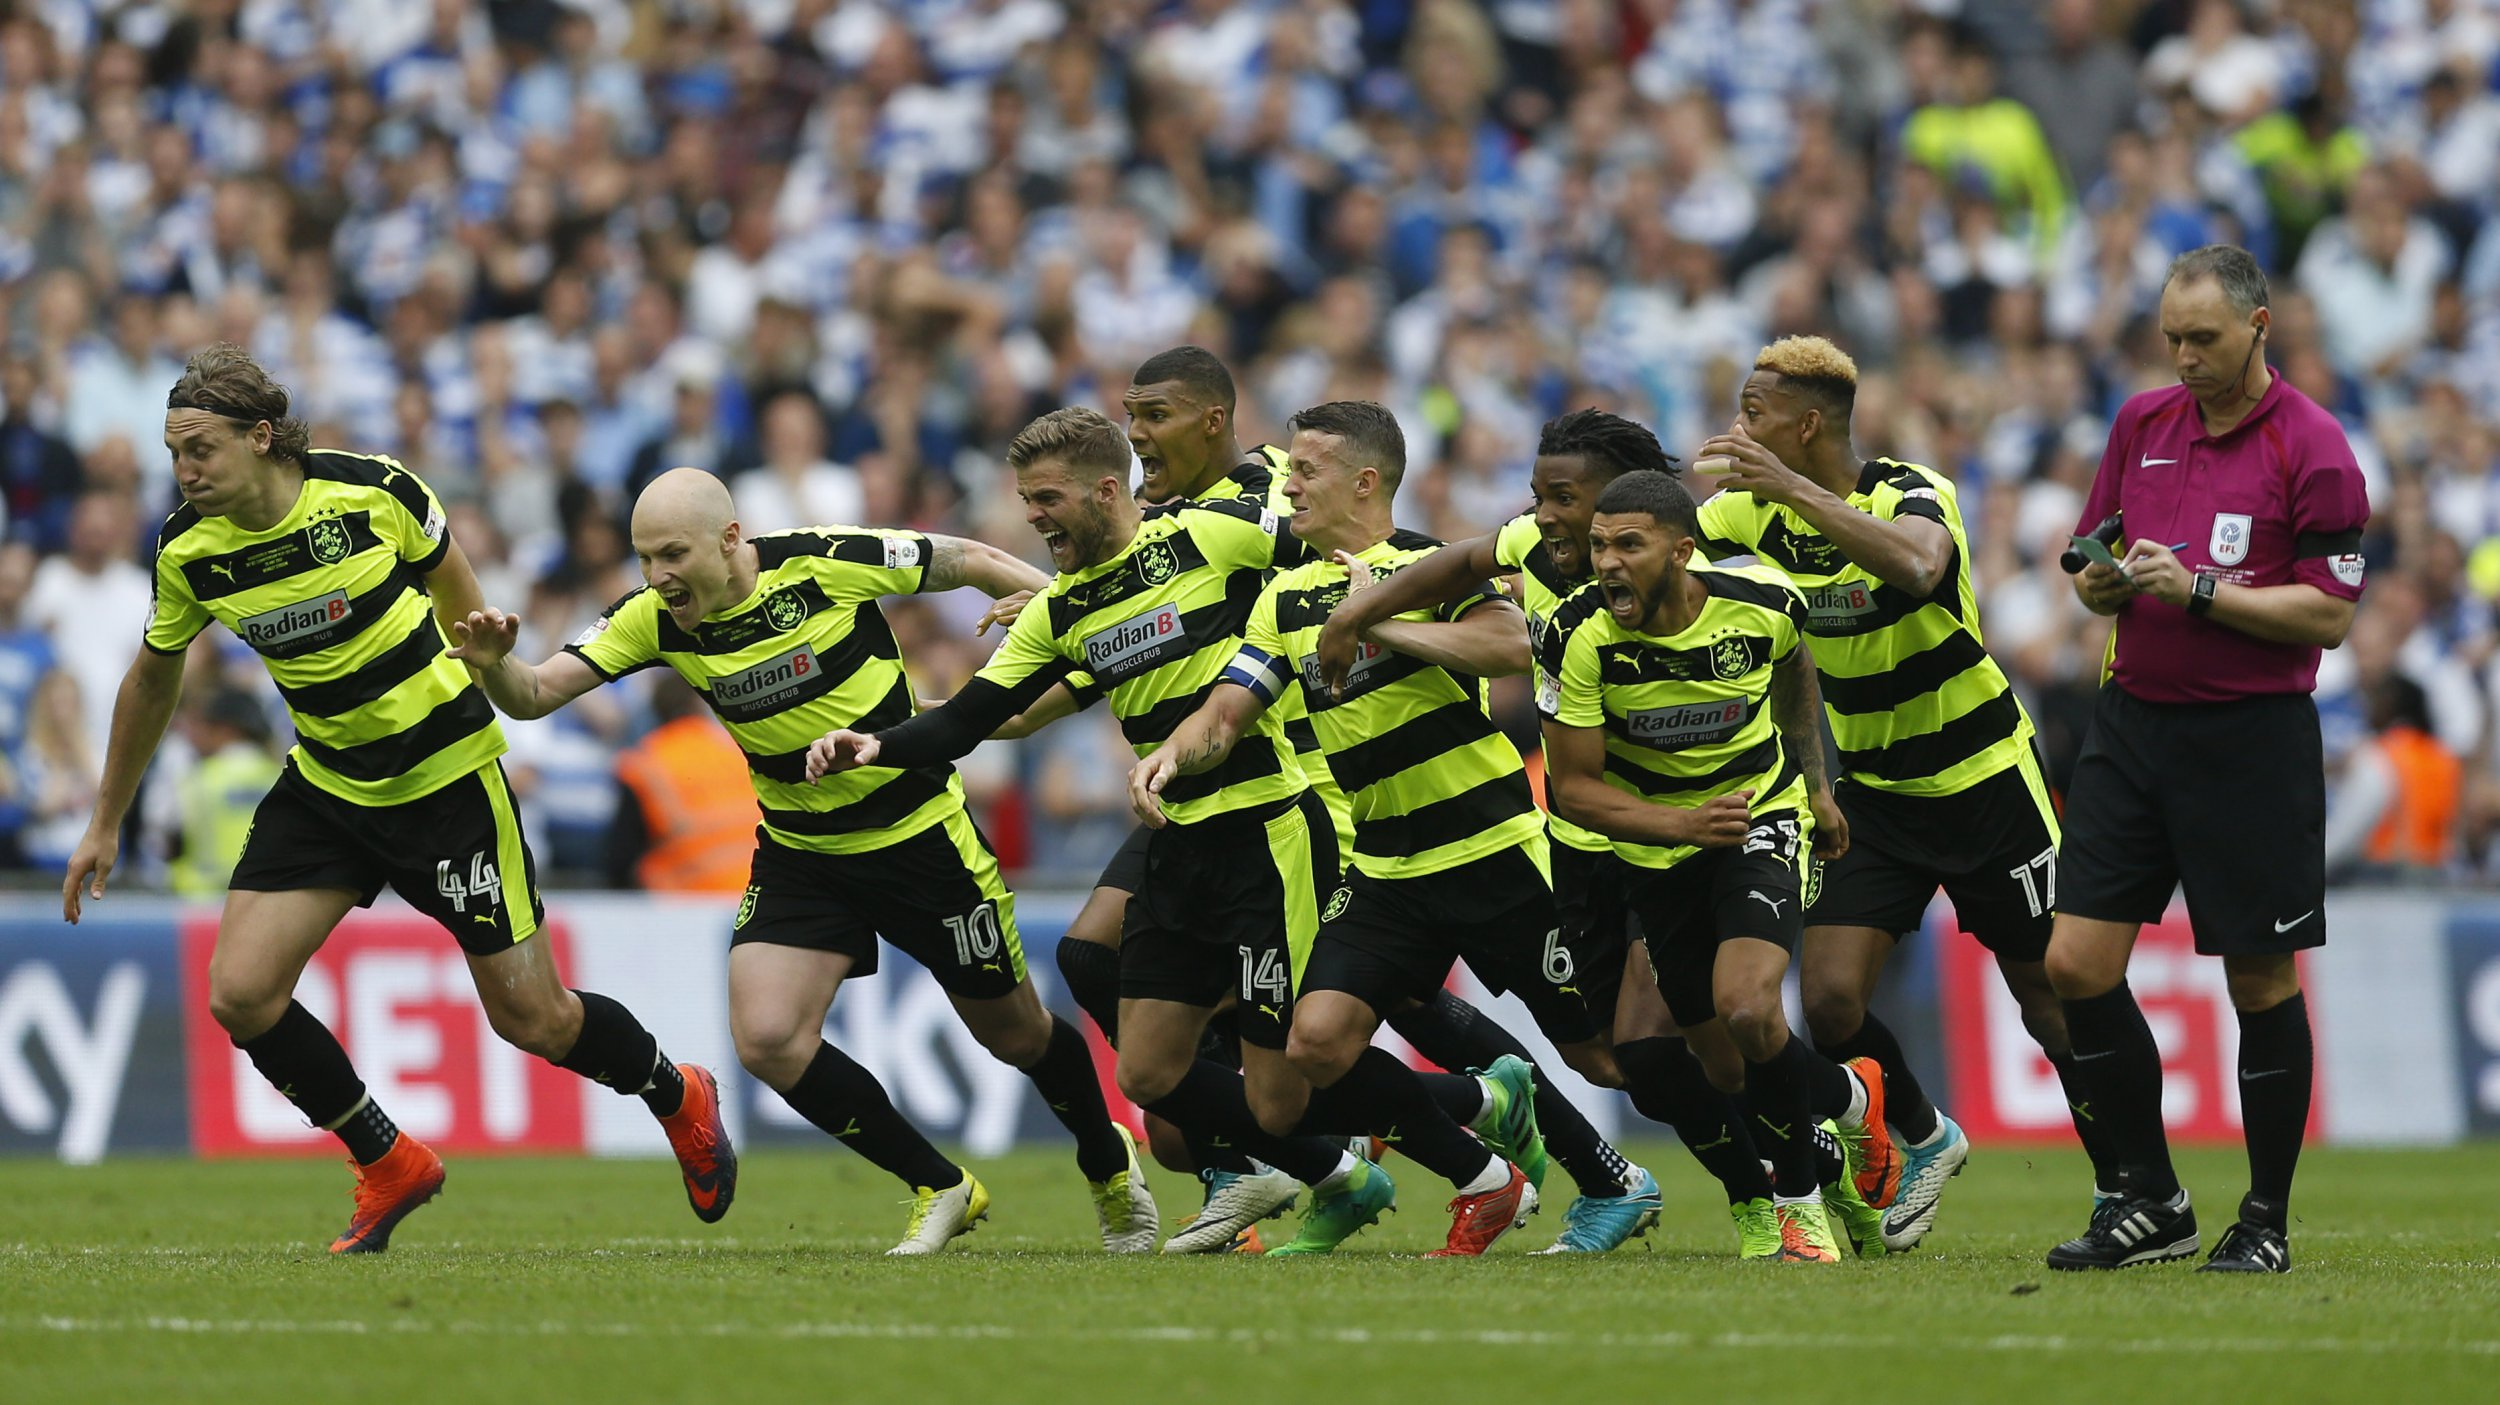 When is the Championship fixtures 2017/18 release date? Are all Football League fixtures released then?